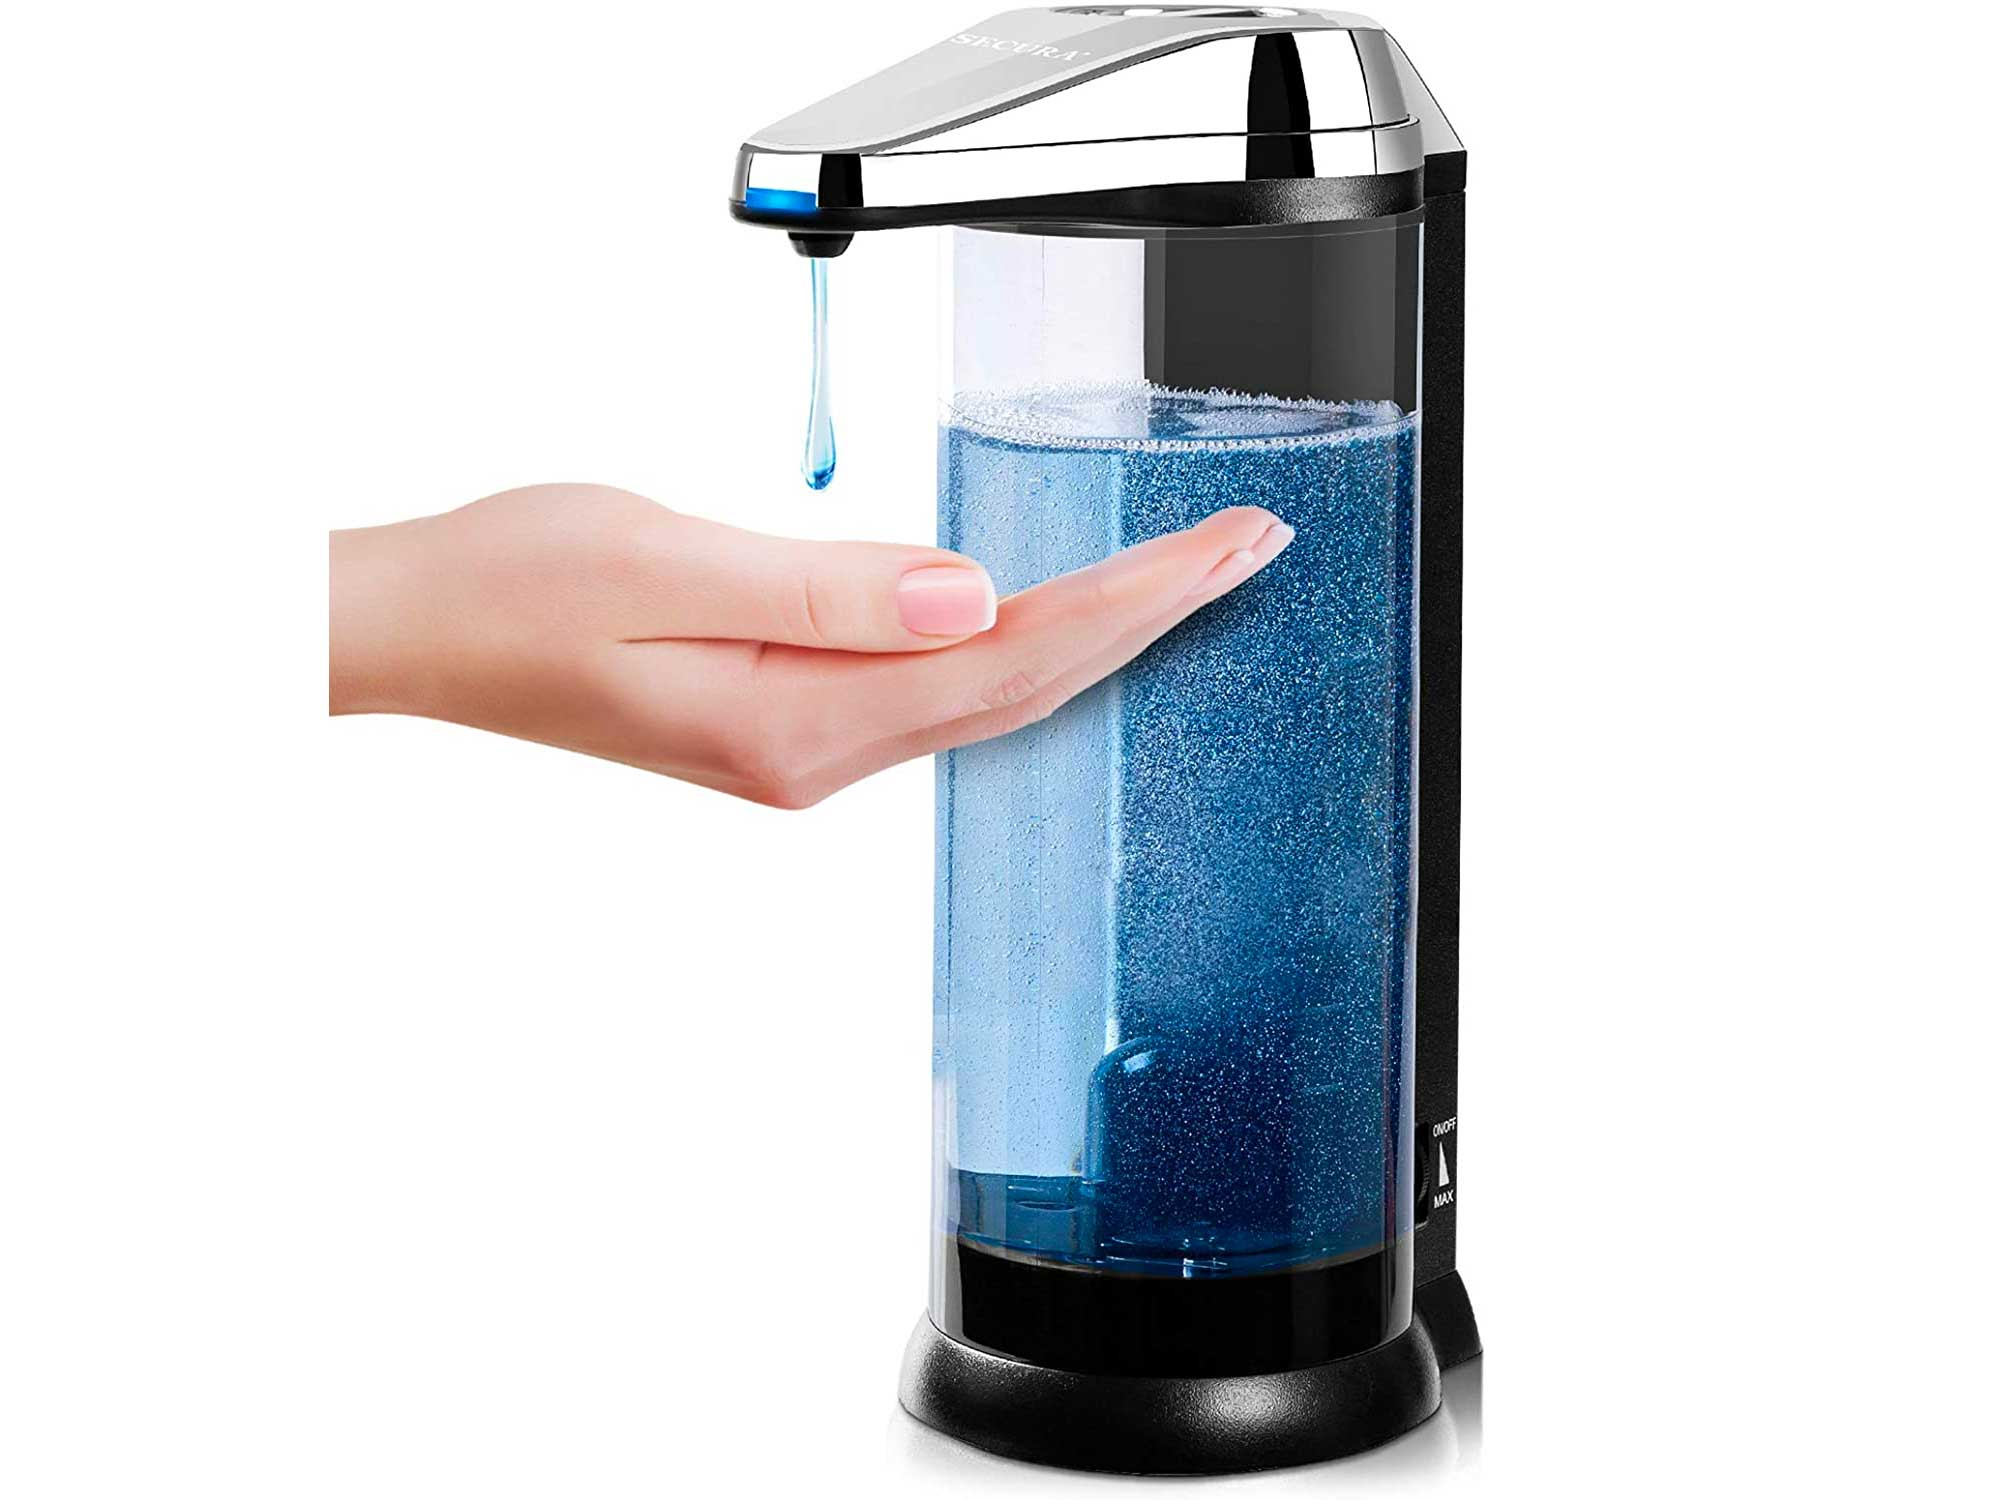 Secura 17oz / 500ml Premium Touchless Battery Operated Electric Automatic Soap Dispenser w/Adjustable Soap Dispensing Volume Control Dial (Chrome)